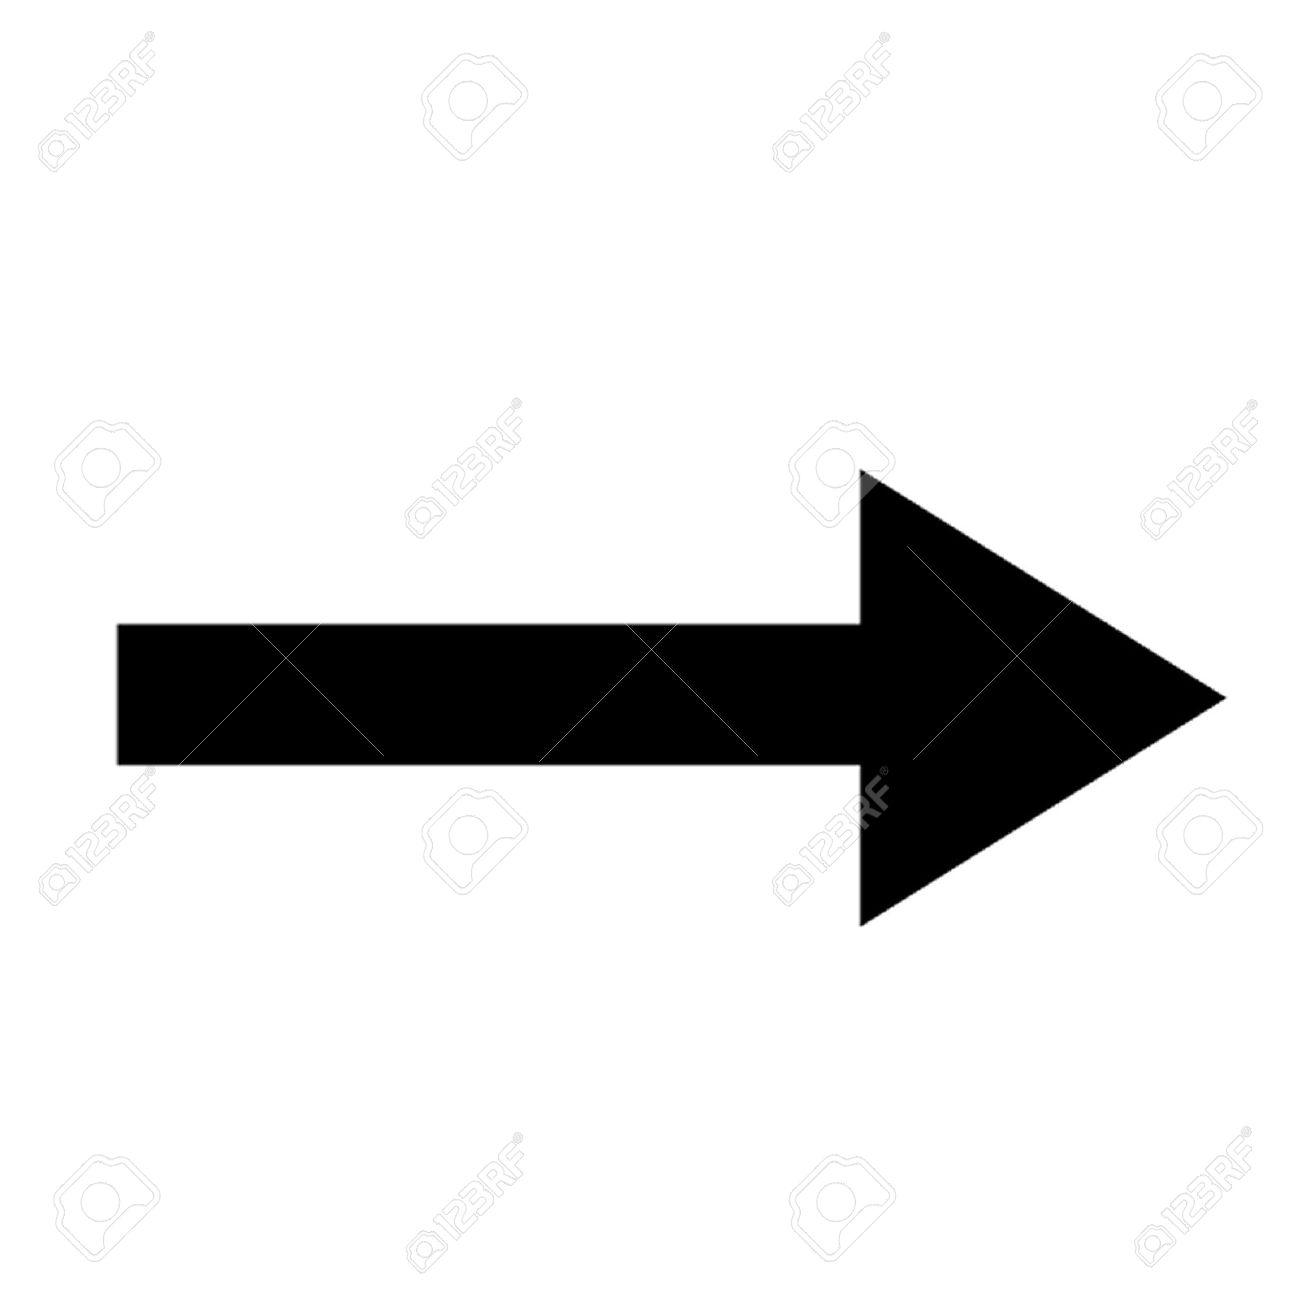 Picture of arrow pointing right freeuse Arrow Pointing Right Royalty Free Cliparts, Vectors, And Stock ... freeuse